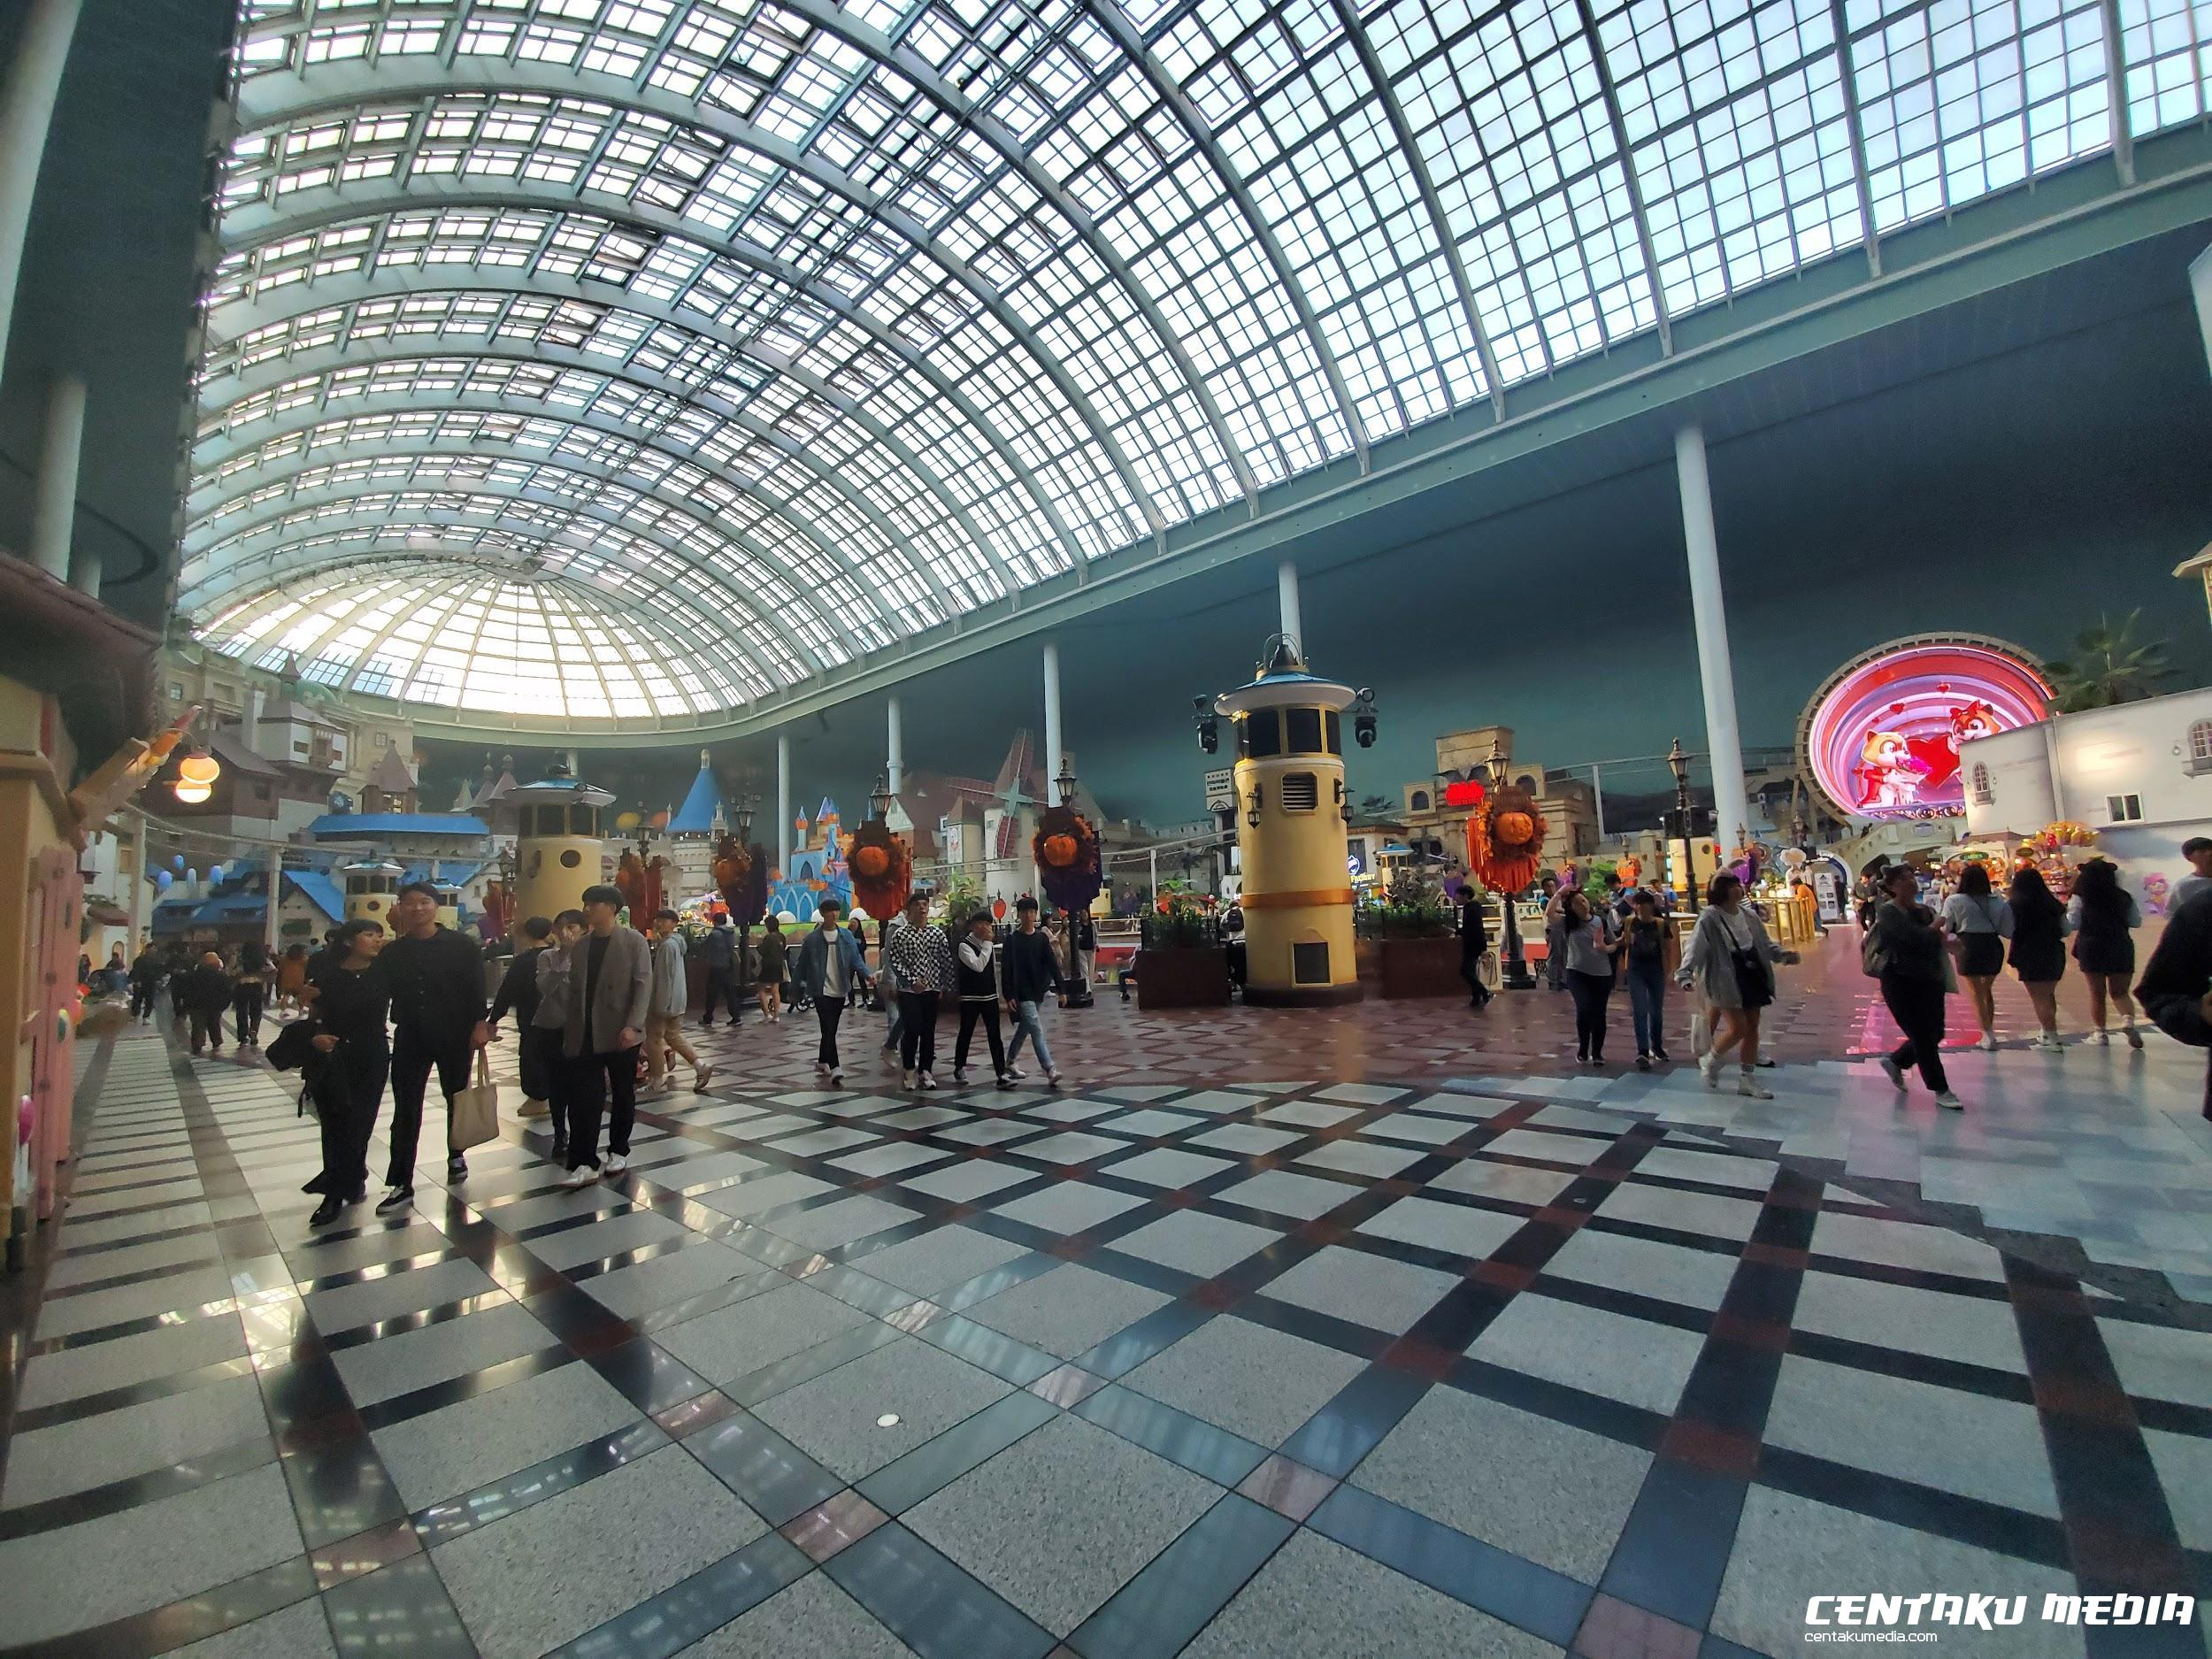 A view from inside Lotte World